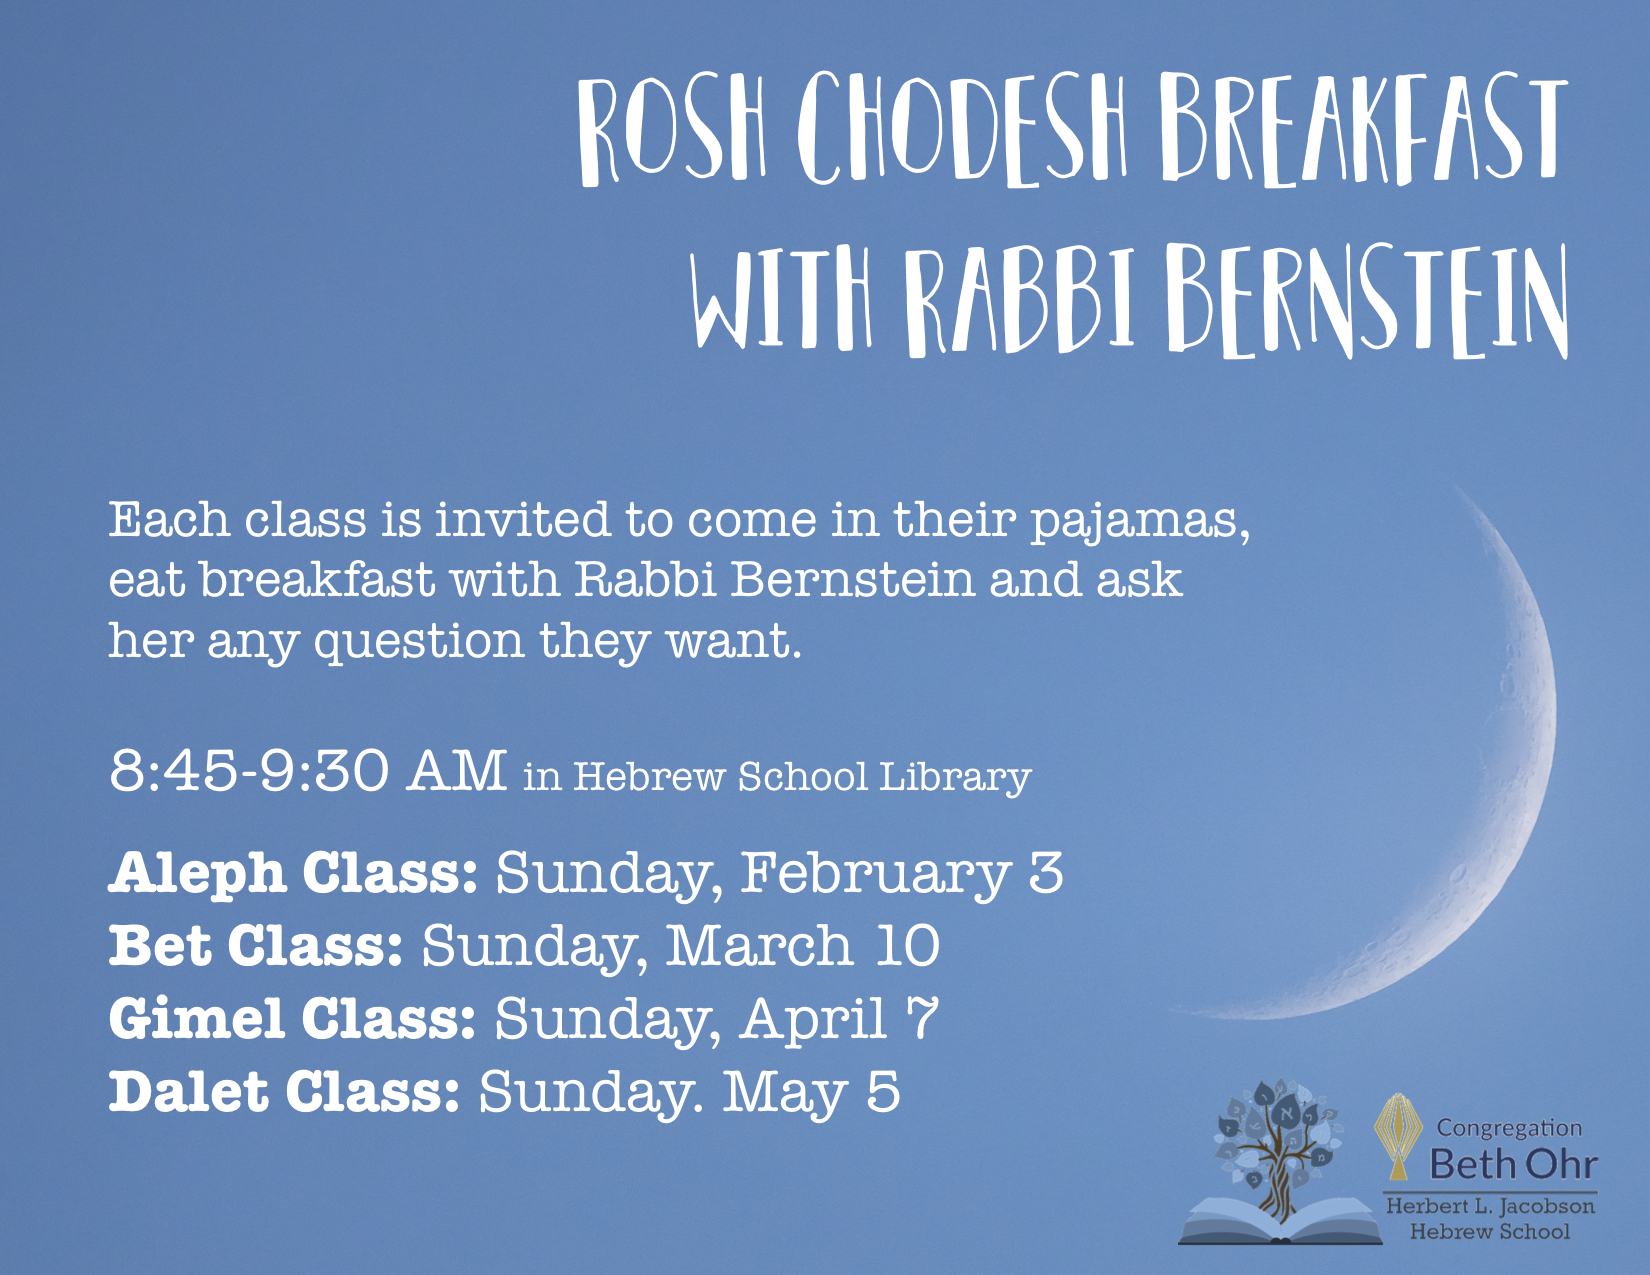 Bet Rosh Chodesh Breakfast